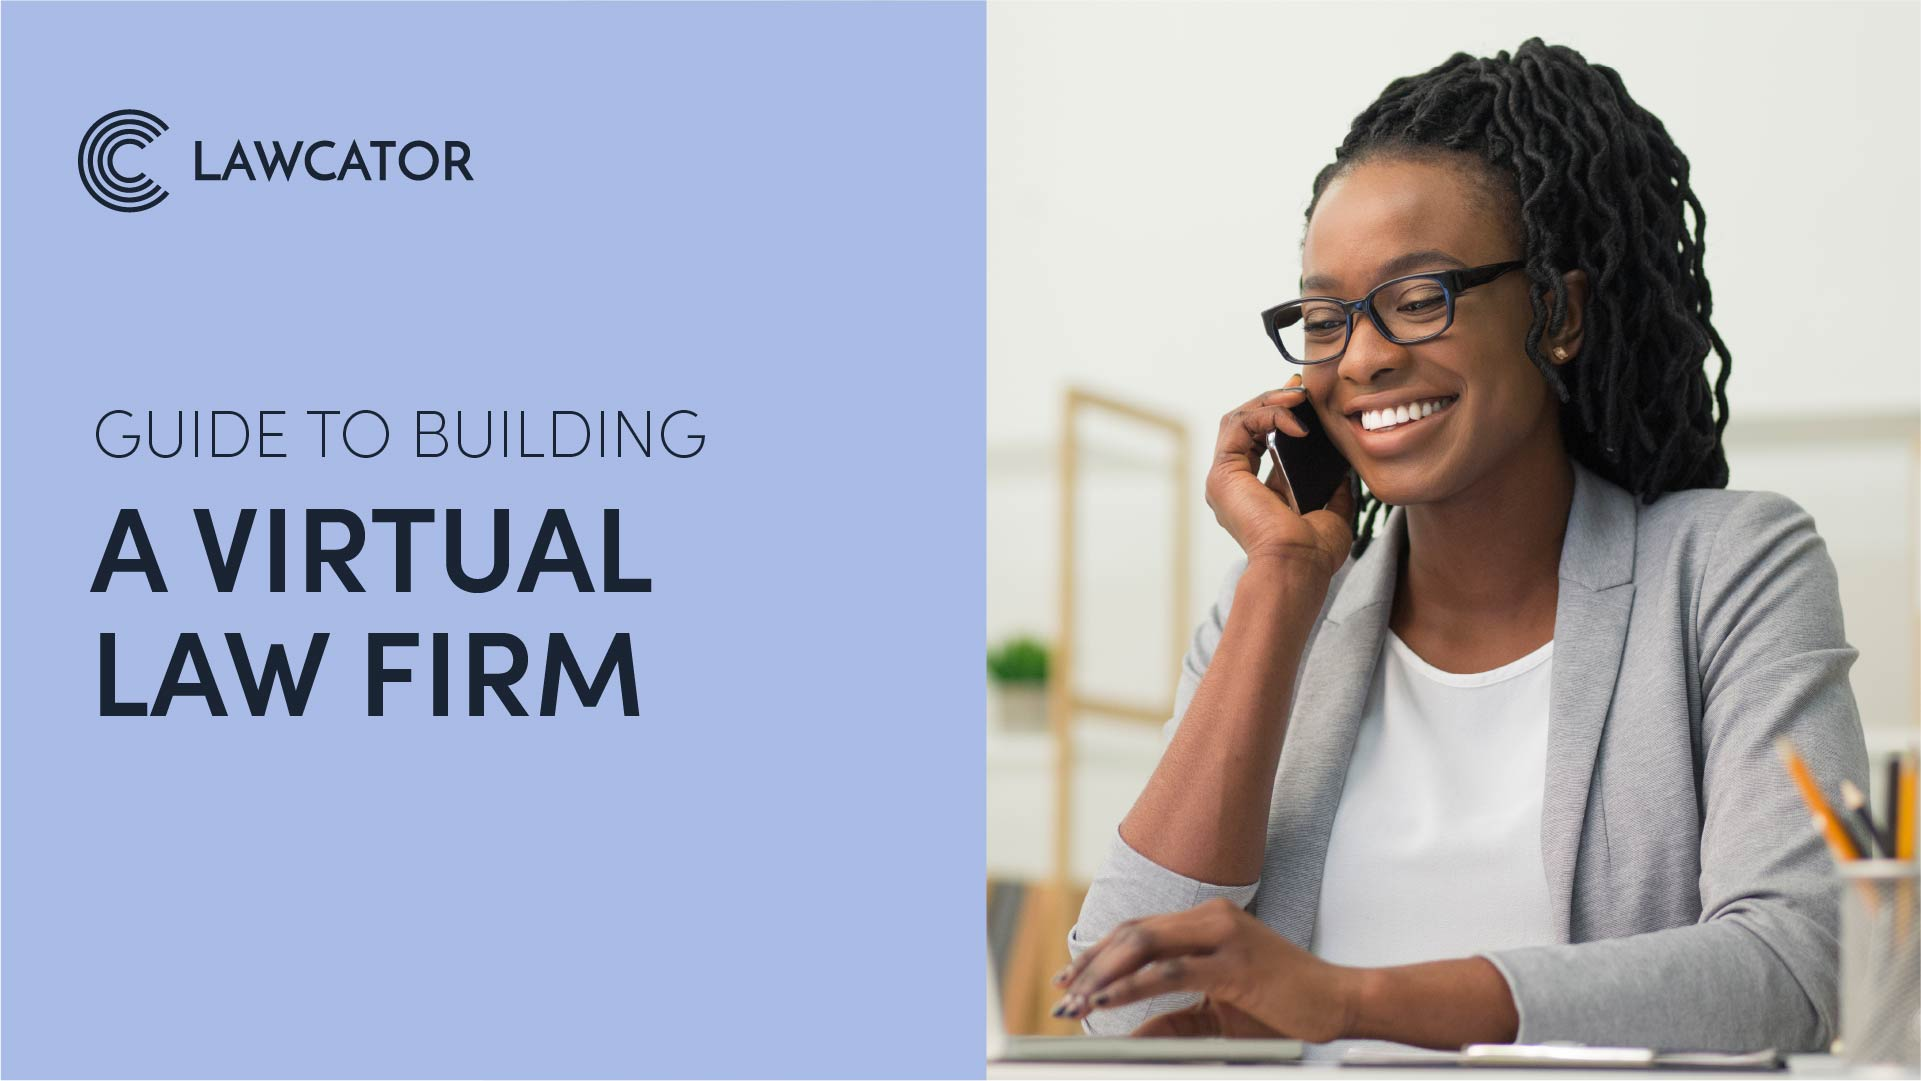 Guide to Building a Virtual Law Firm